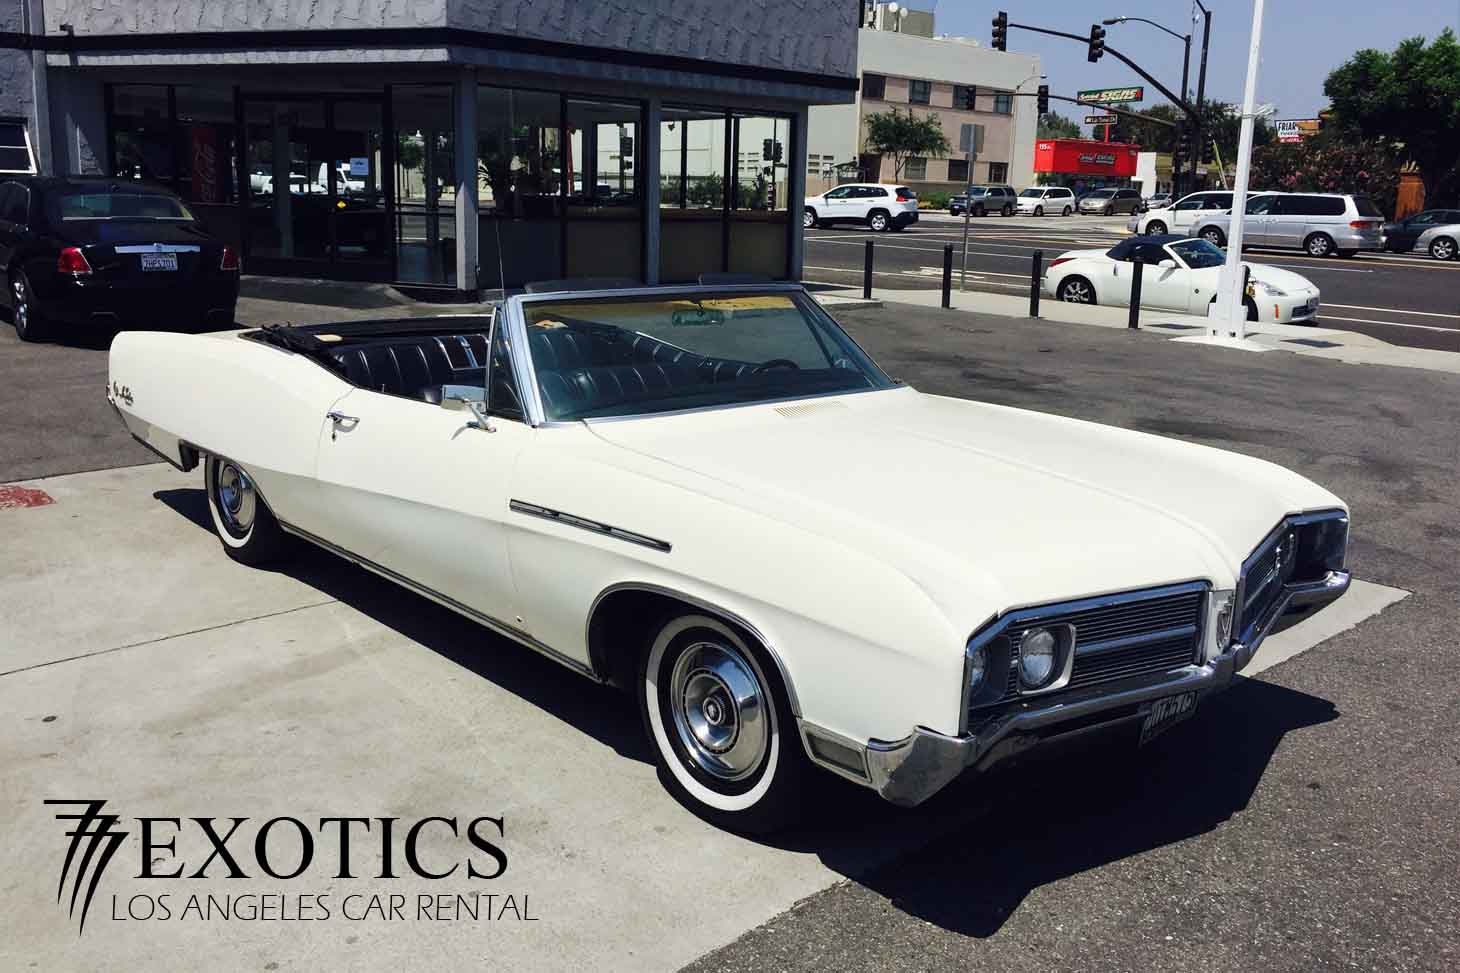 Classic Car Rental Los Angeles - Las Vegas Muscle Cars For Rent